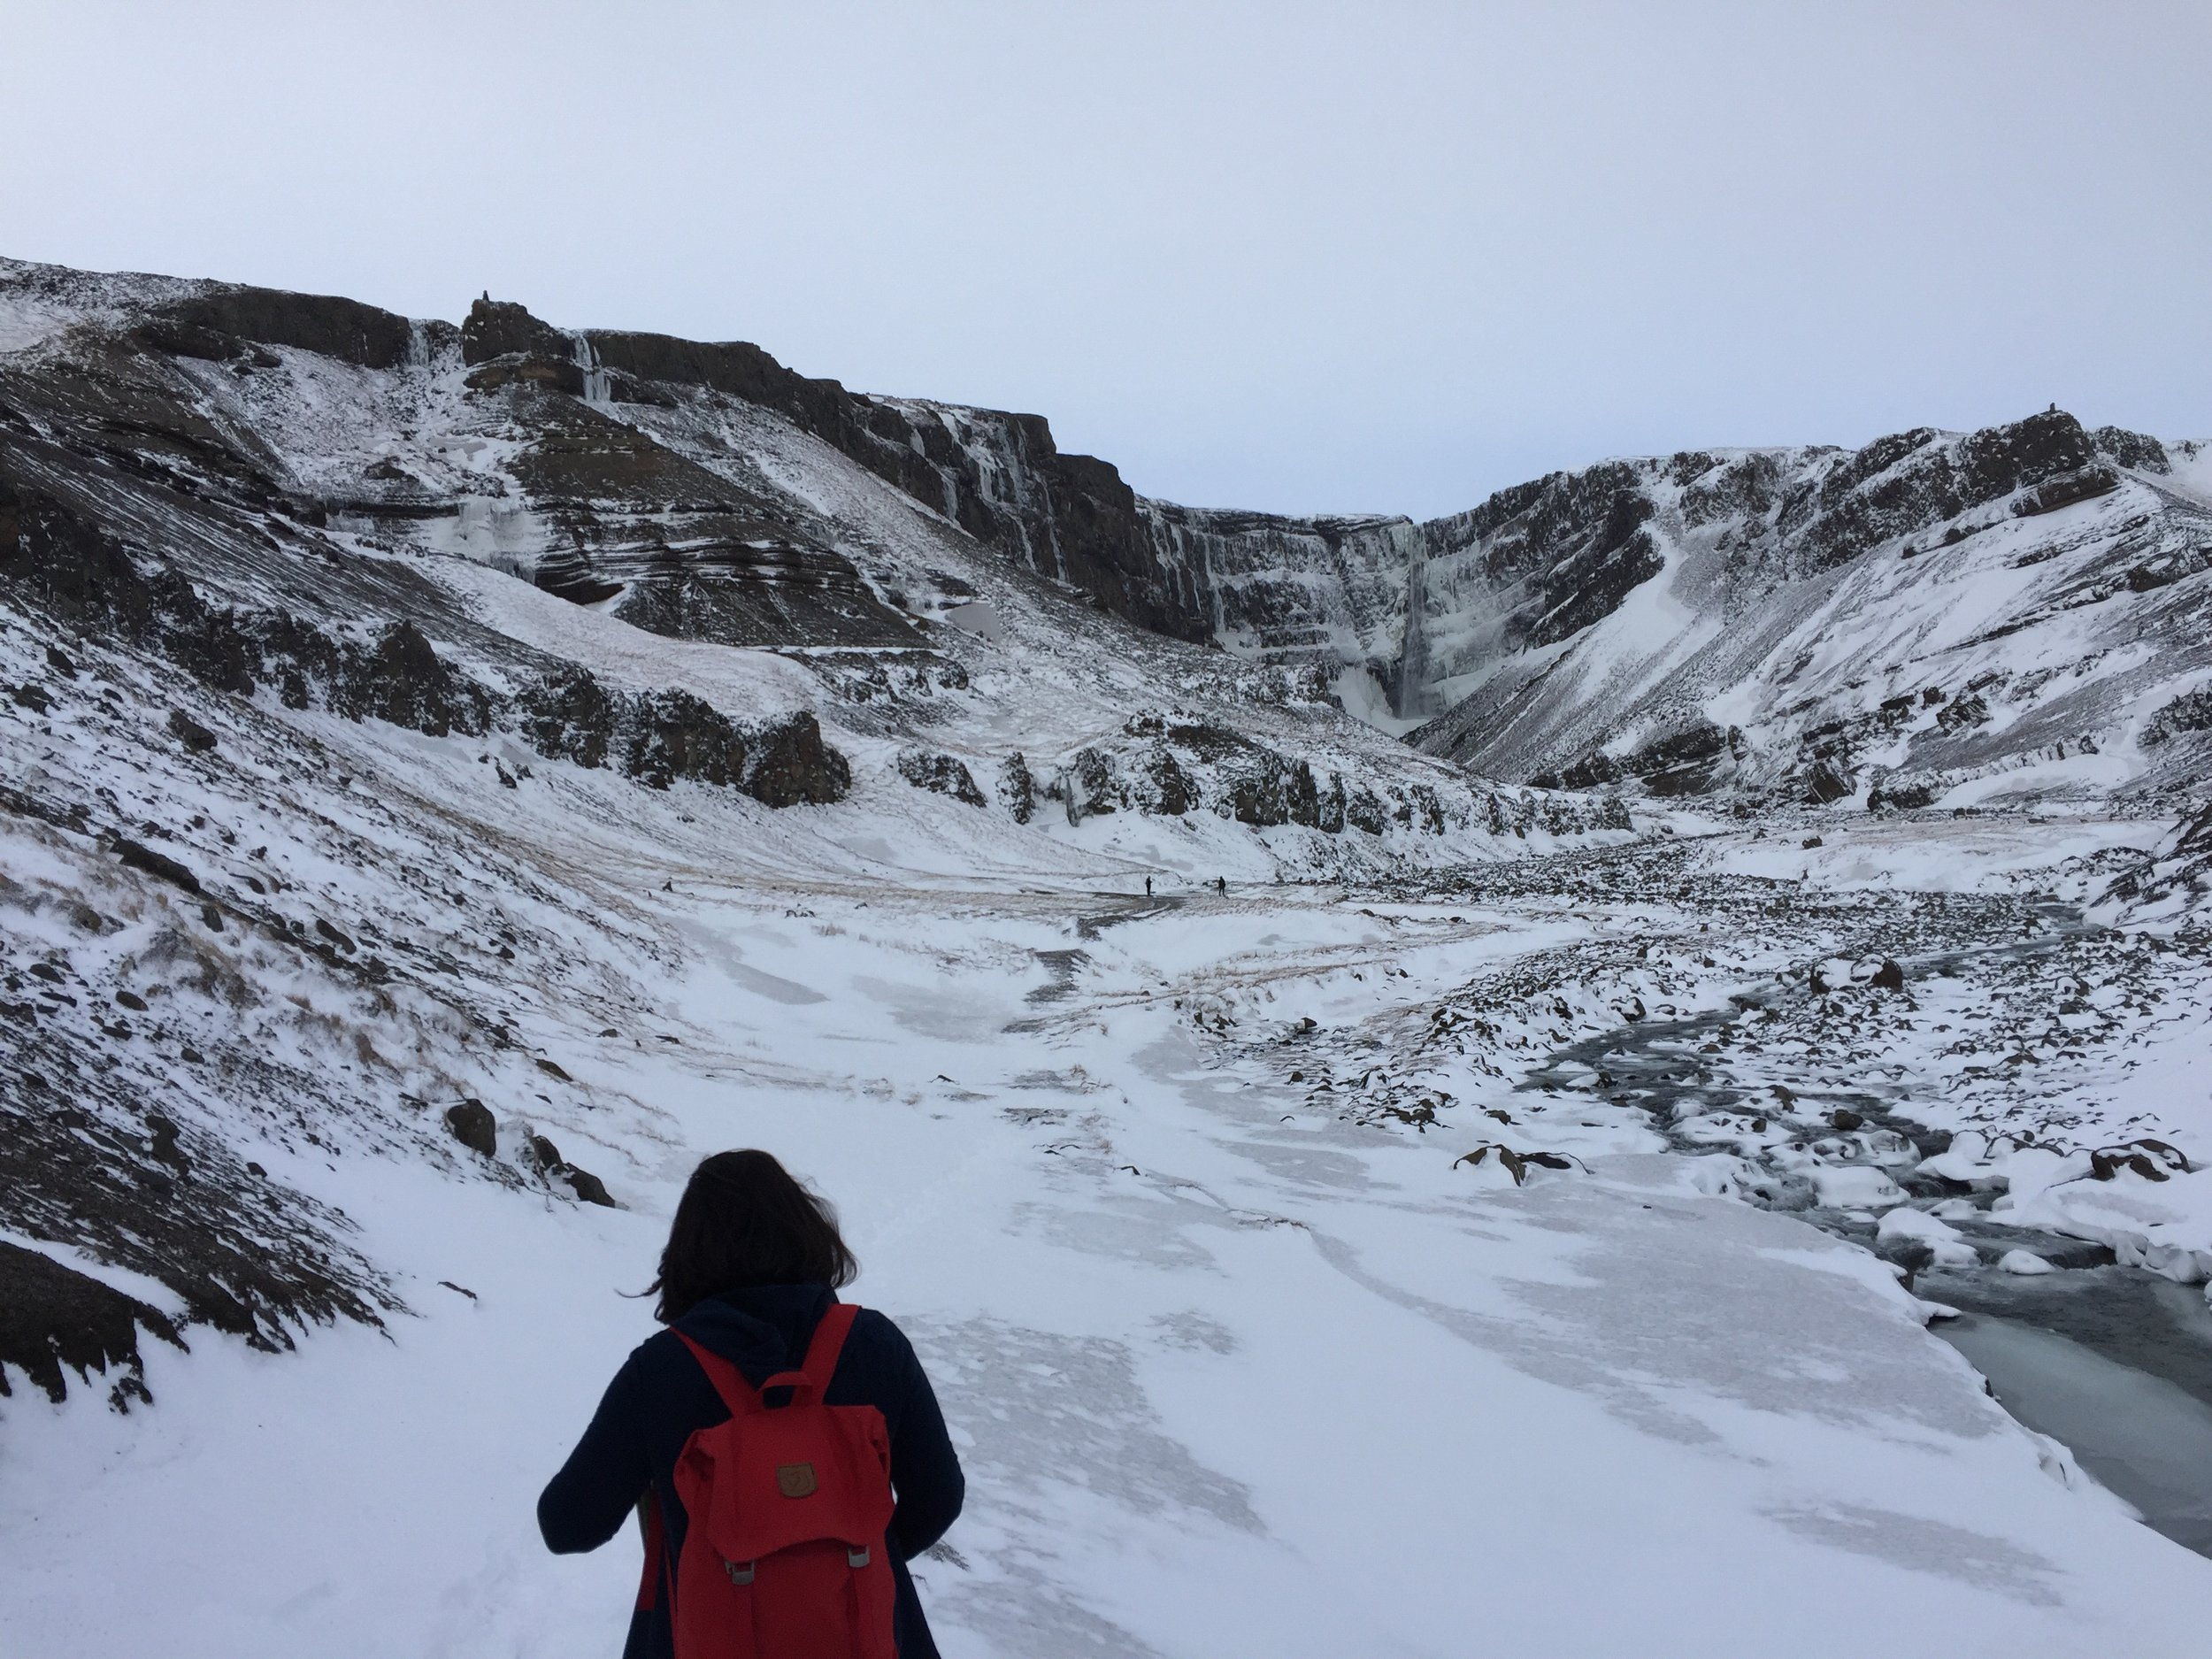 Hiking towards one of the tiers of Hengifoss waterfall.